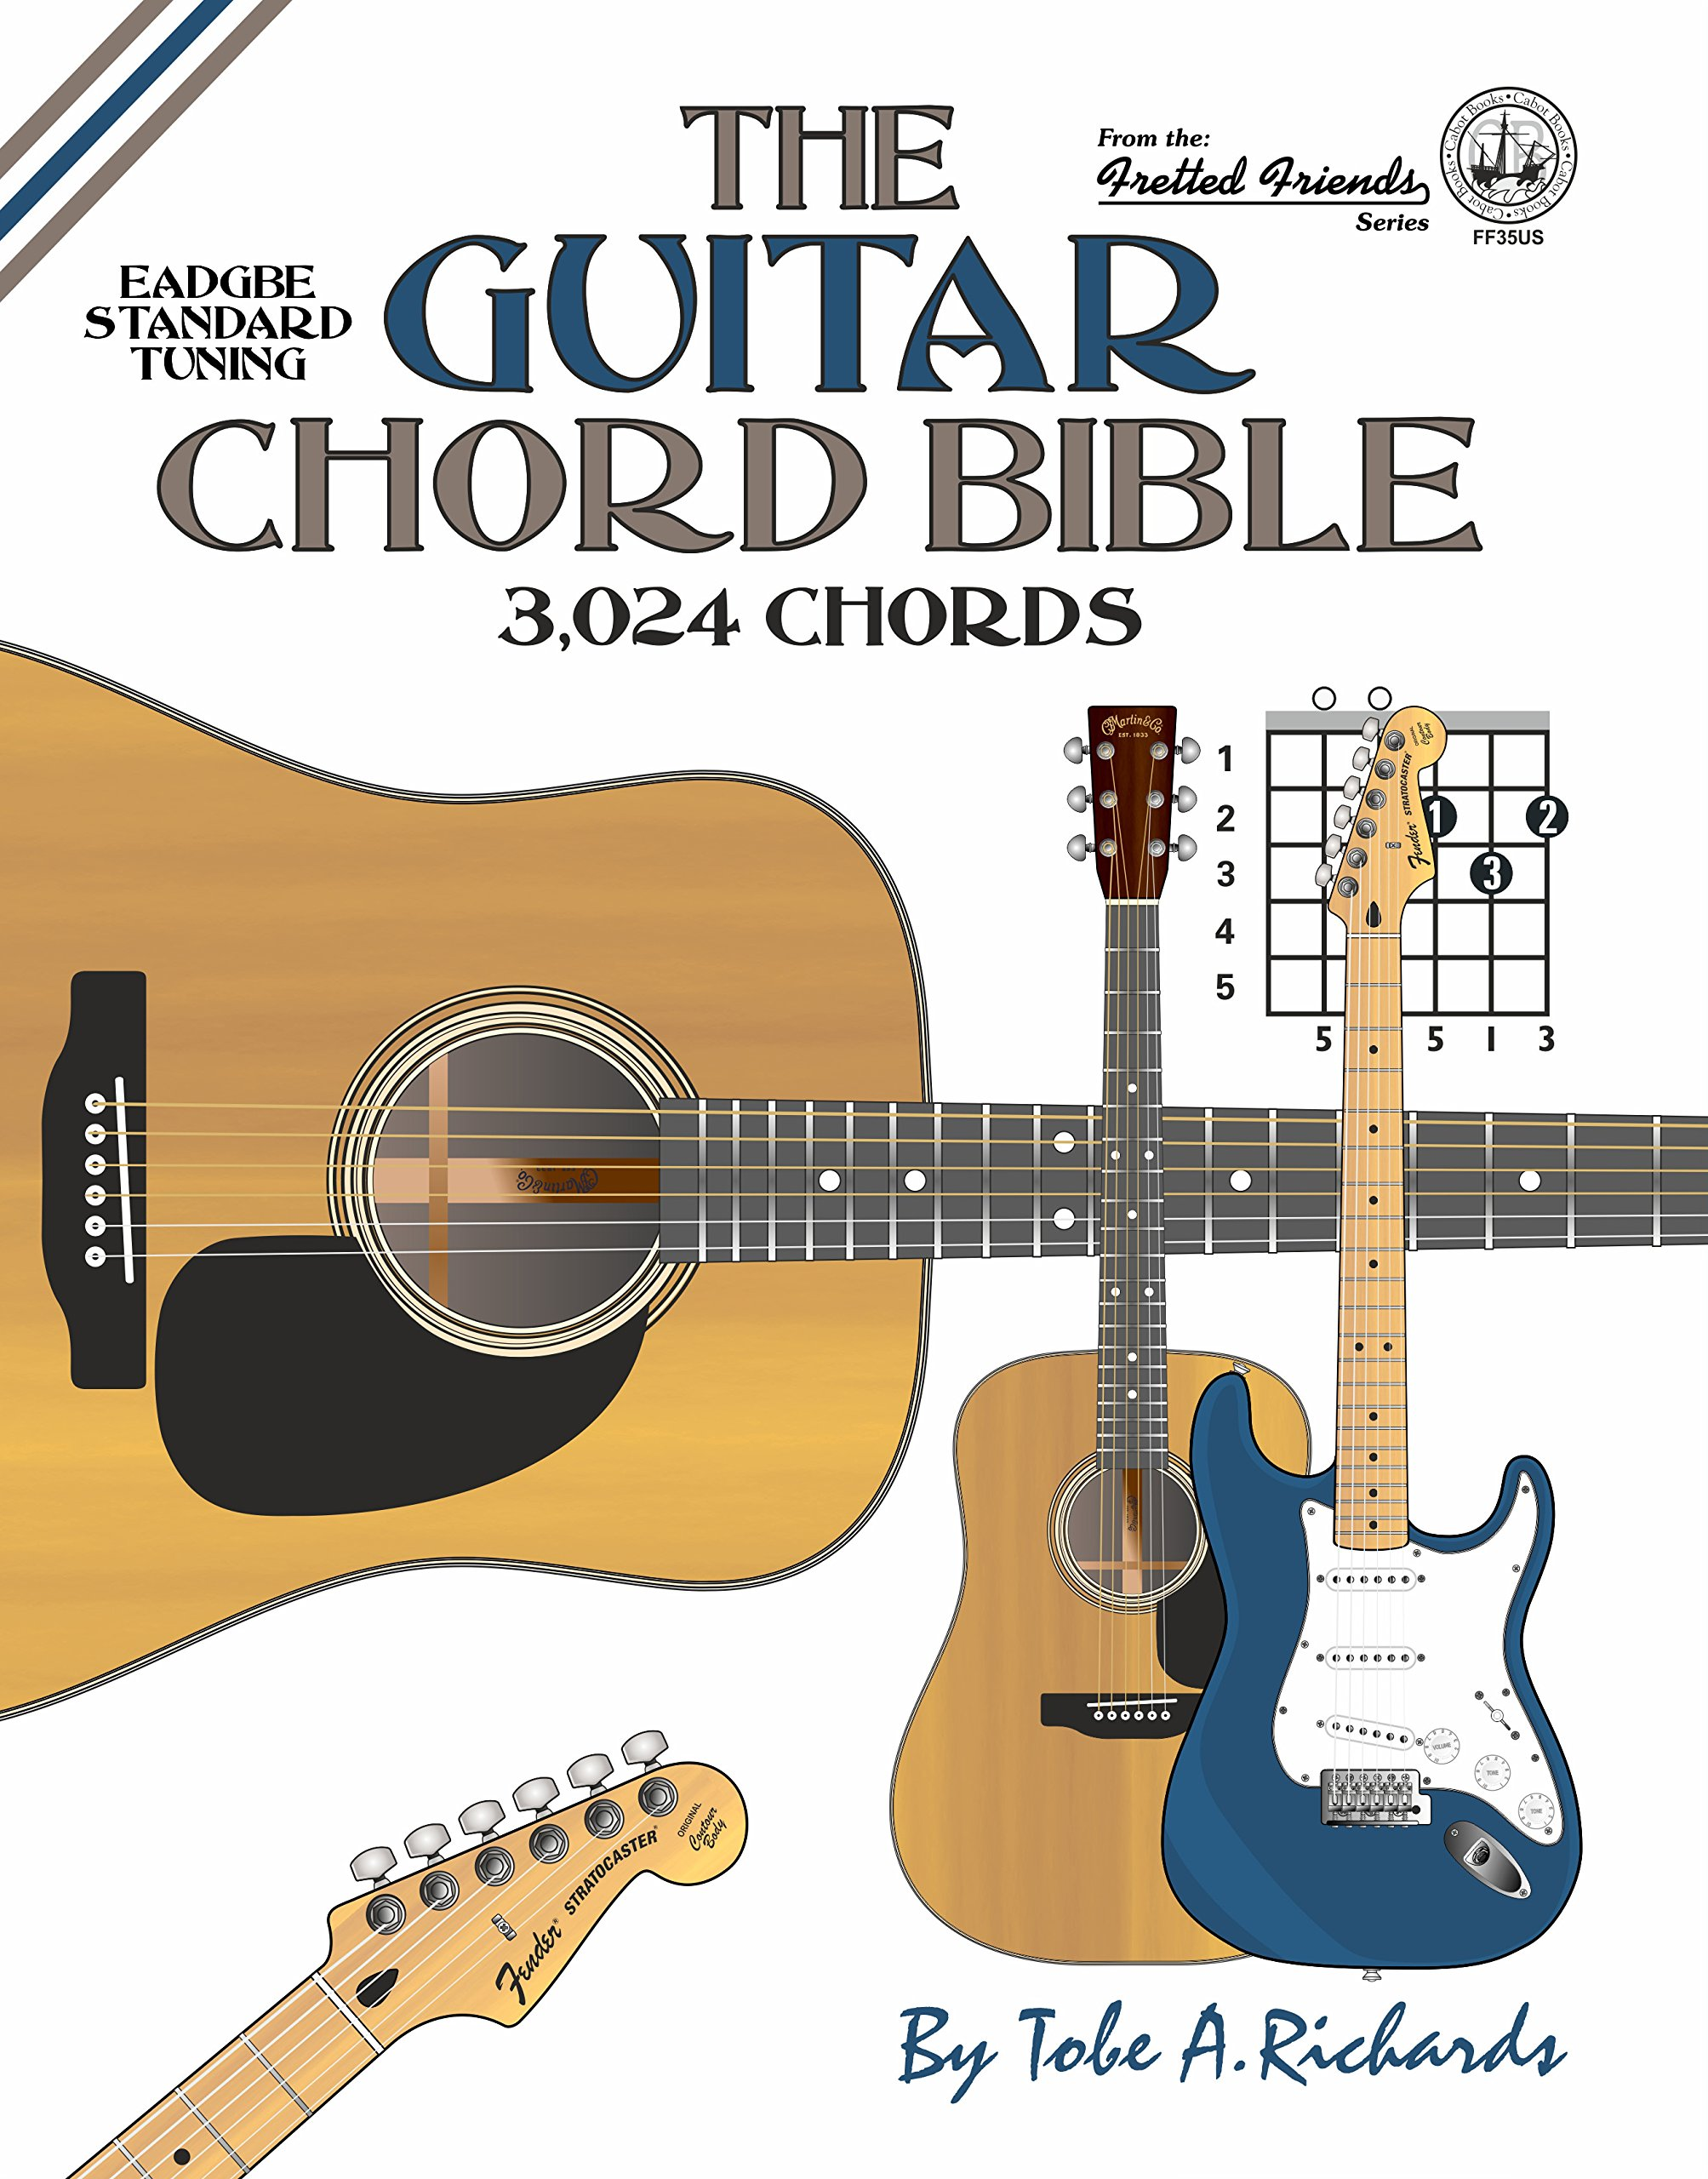 The Guitar Chord Bible Standard Tuning 3024 Chords Fretted Friends